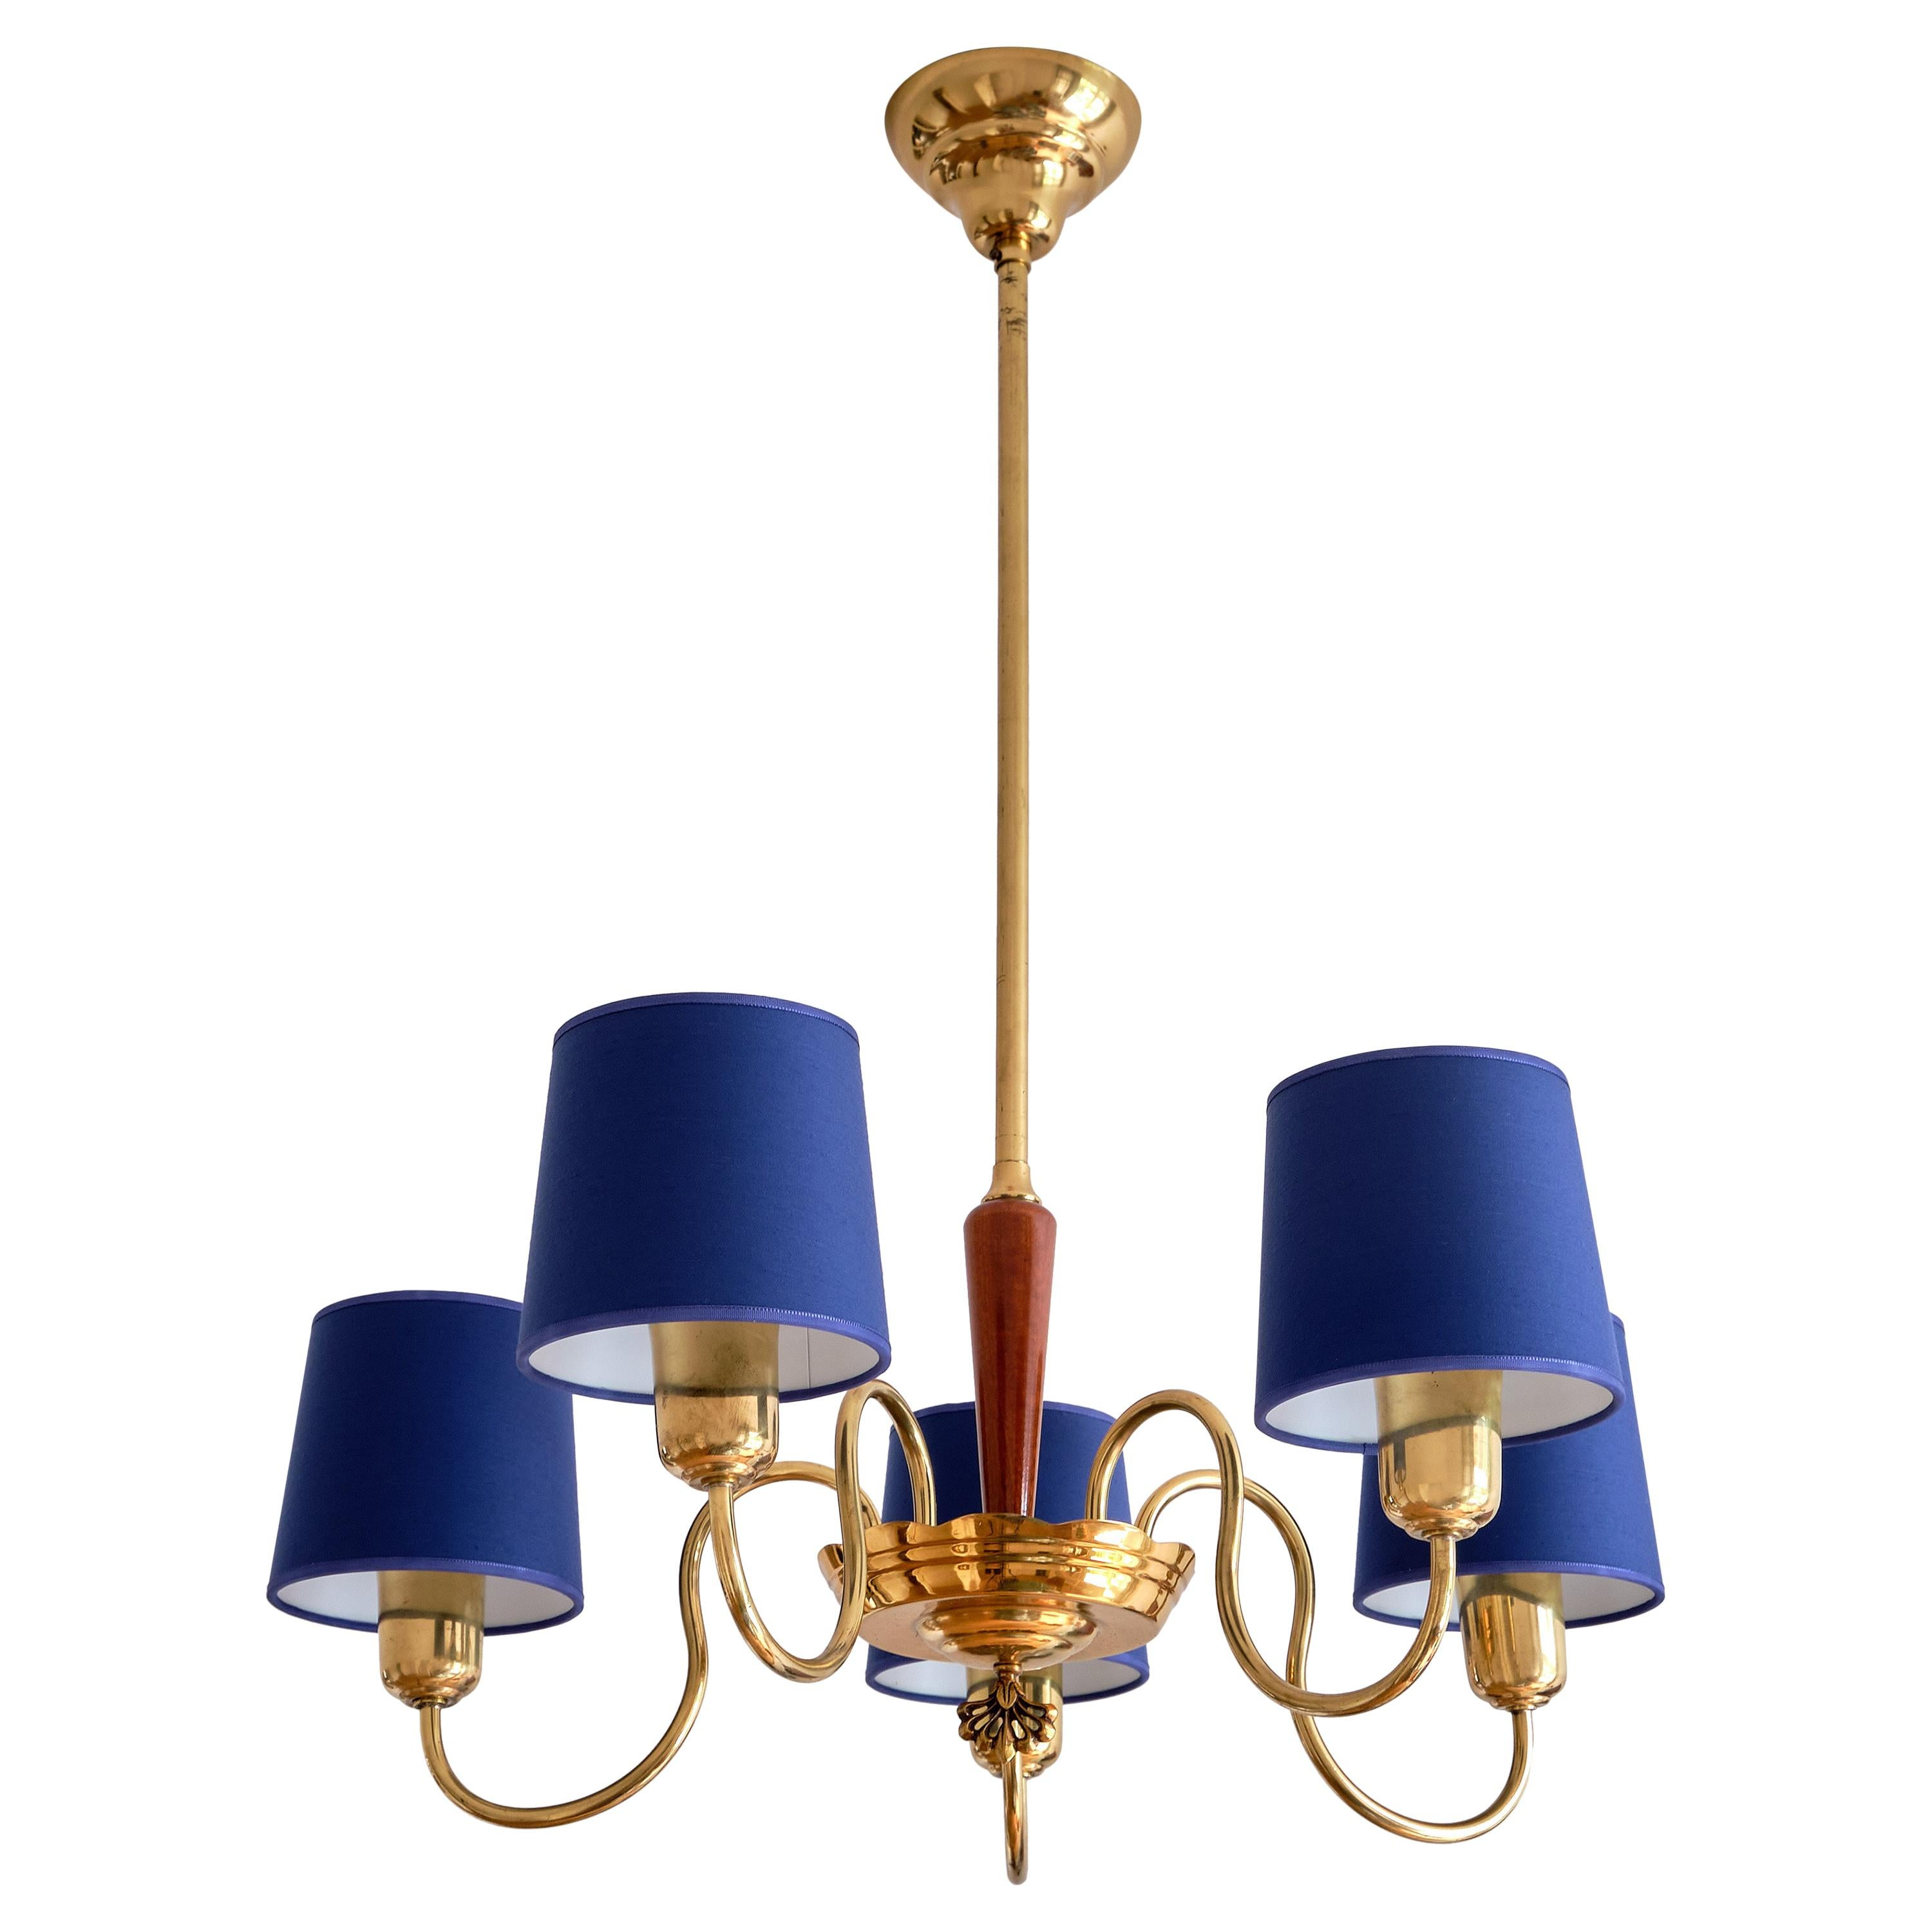 ASEA Five Arm Chandelier in Brass with Blue Shades, Sweden, 1940s